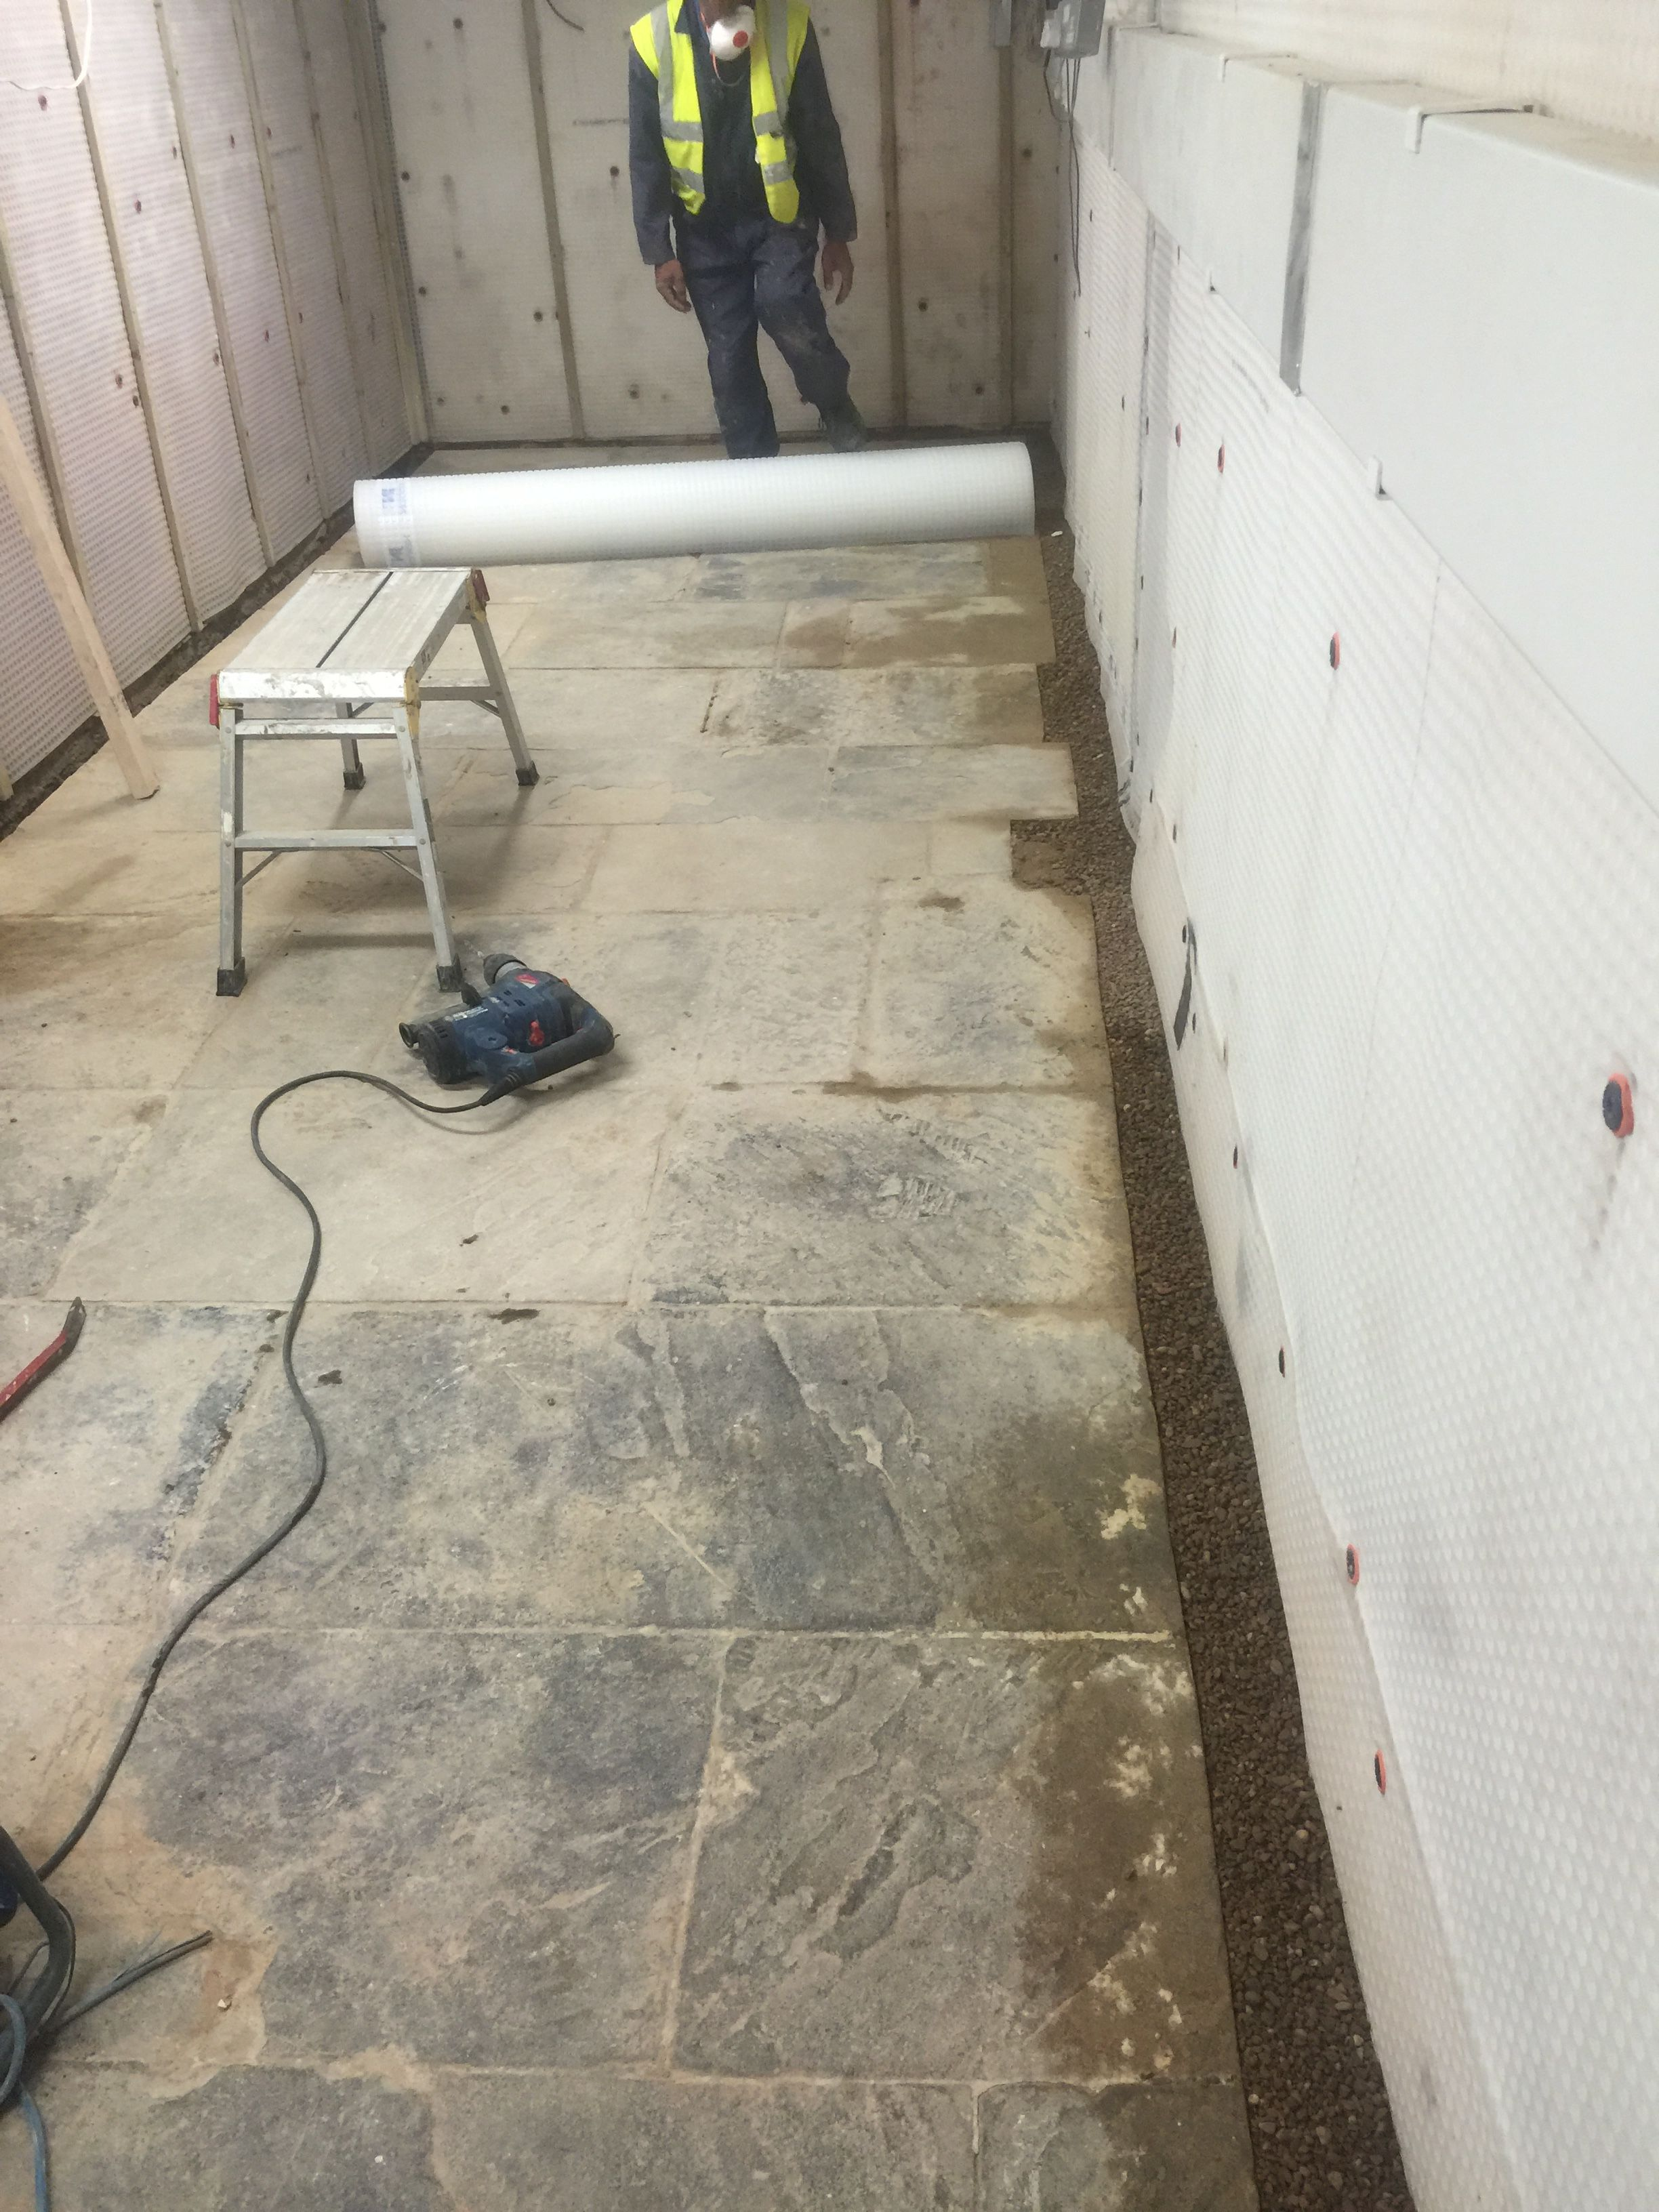 Damp Proofing Rising Damp Cure In Action By ProfessionalsSee - Damp basement walls